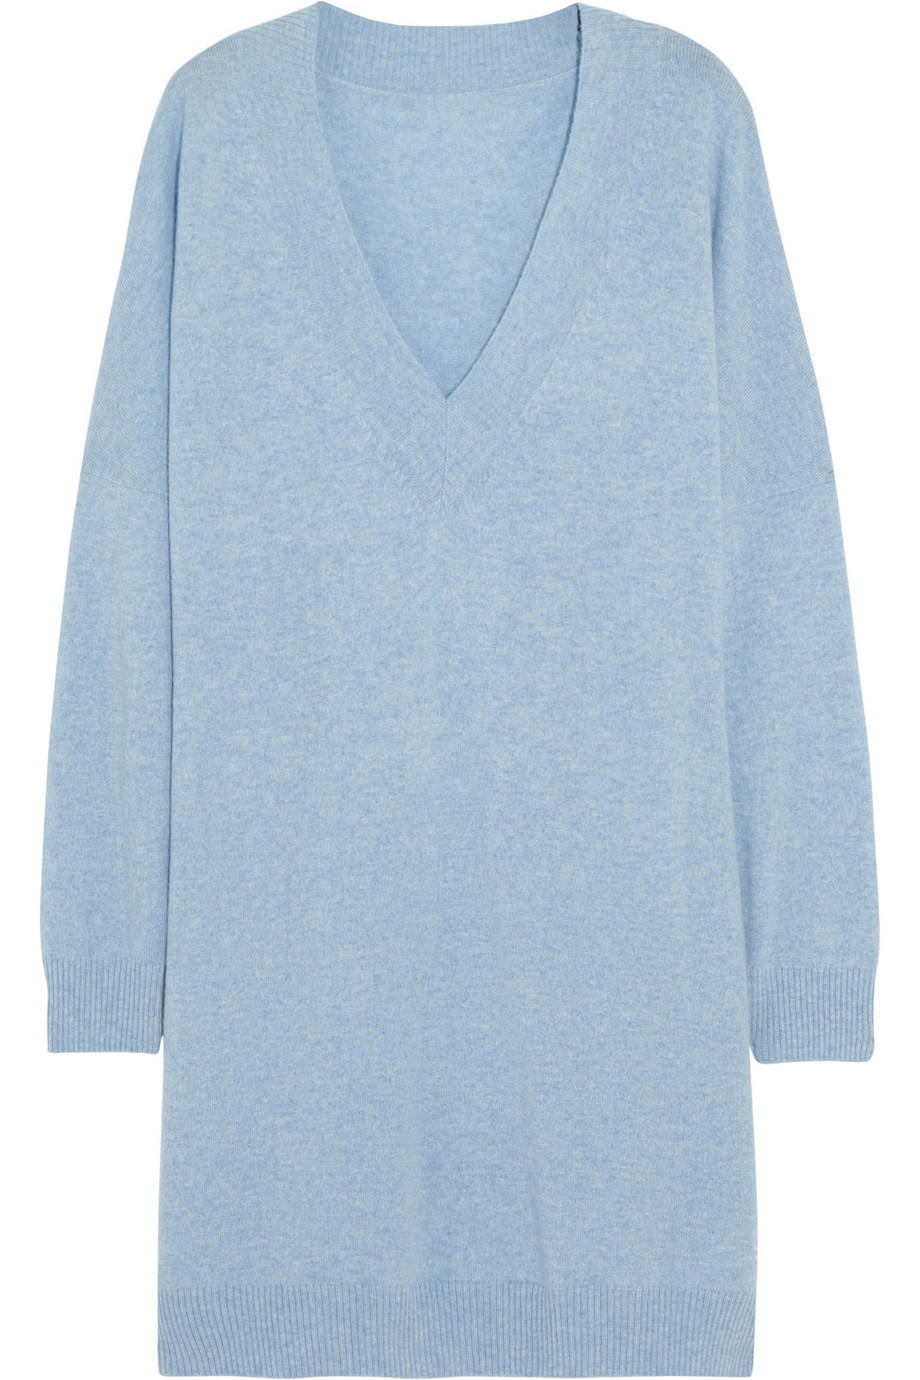 Banjo & matilda Cocktail Oversized Cashmere Sweater in Blue | Lyst